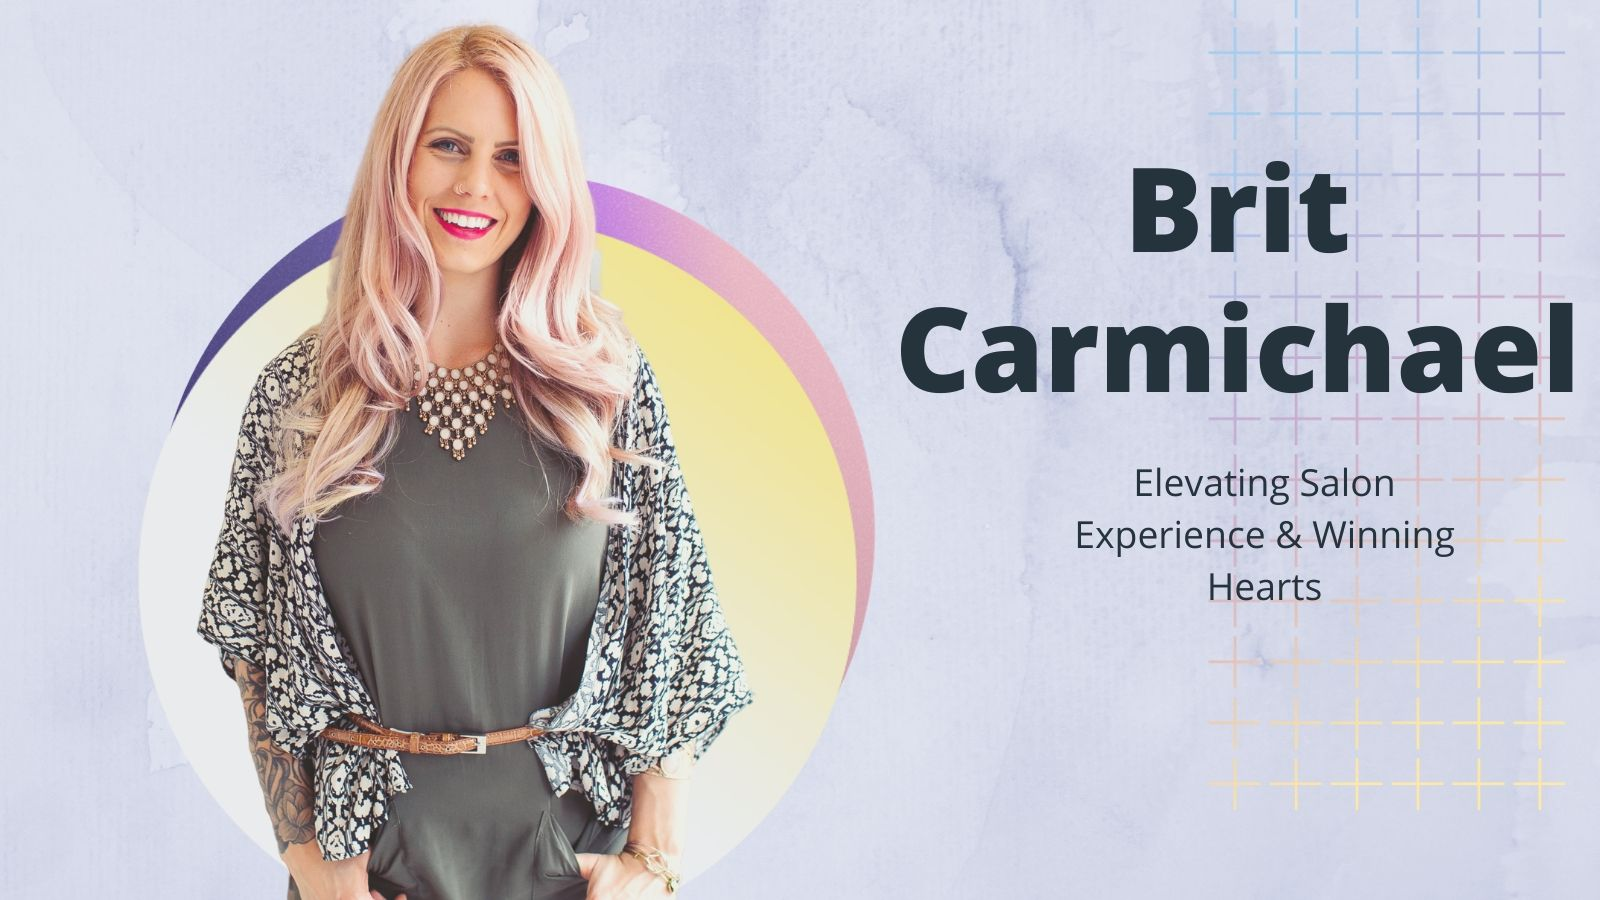 Elevating Salon Experience & Winning Hearts: The Story of Brit Carmicheal